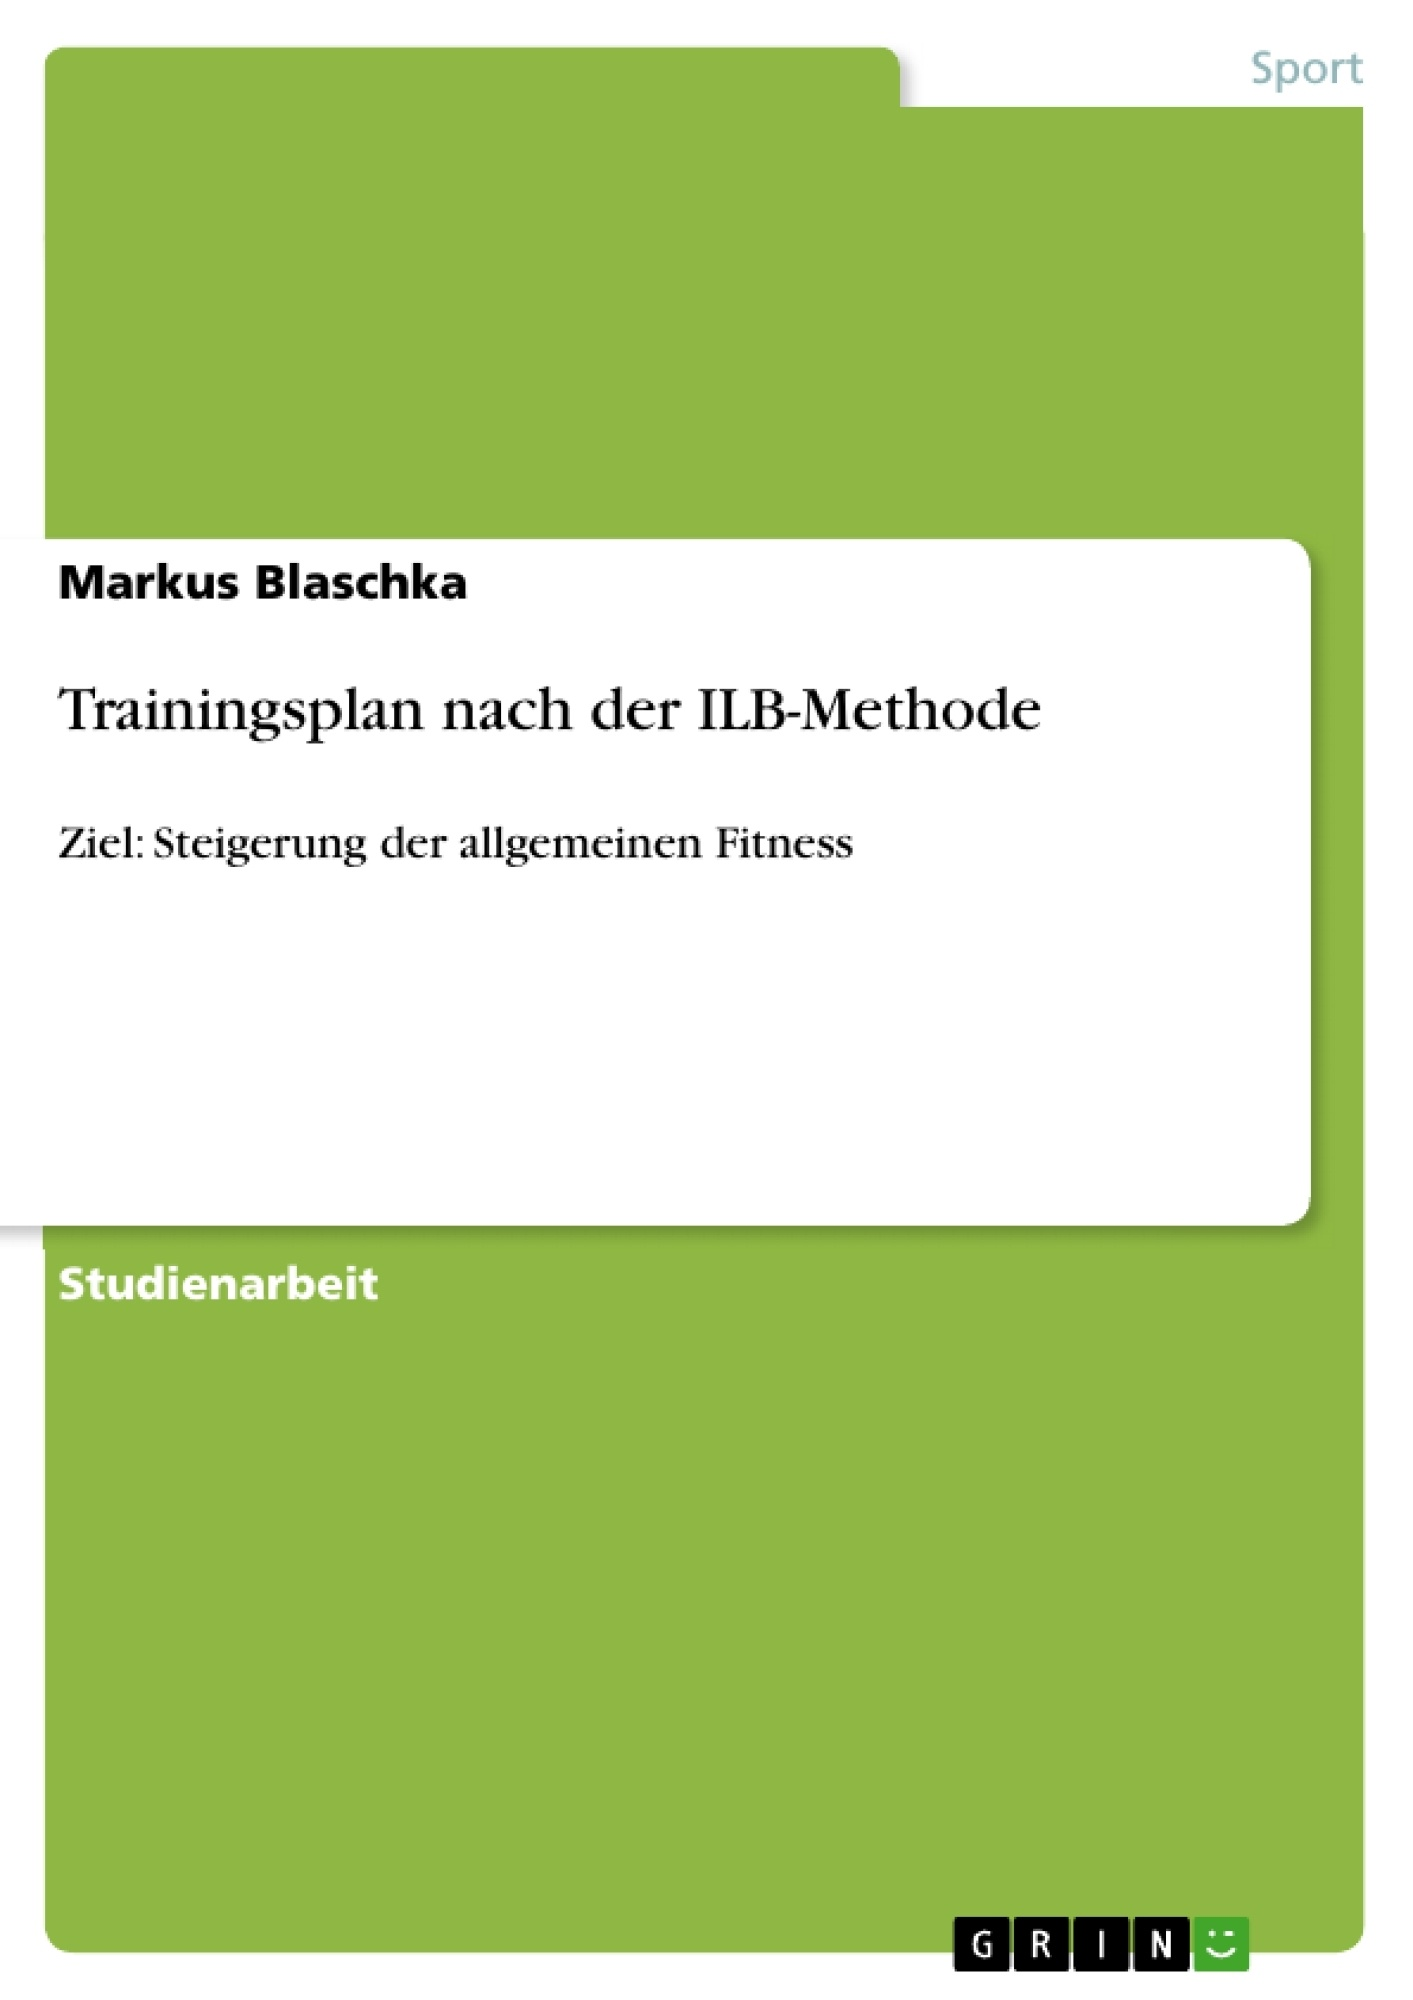 Titel: Trainingsplan nach der ILB-Methode